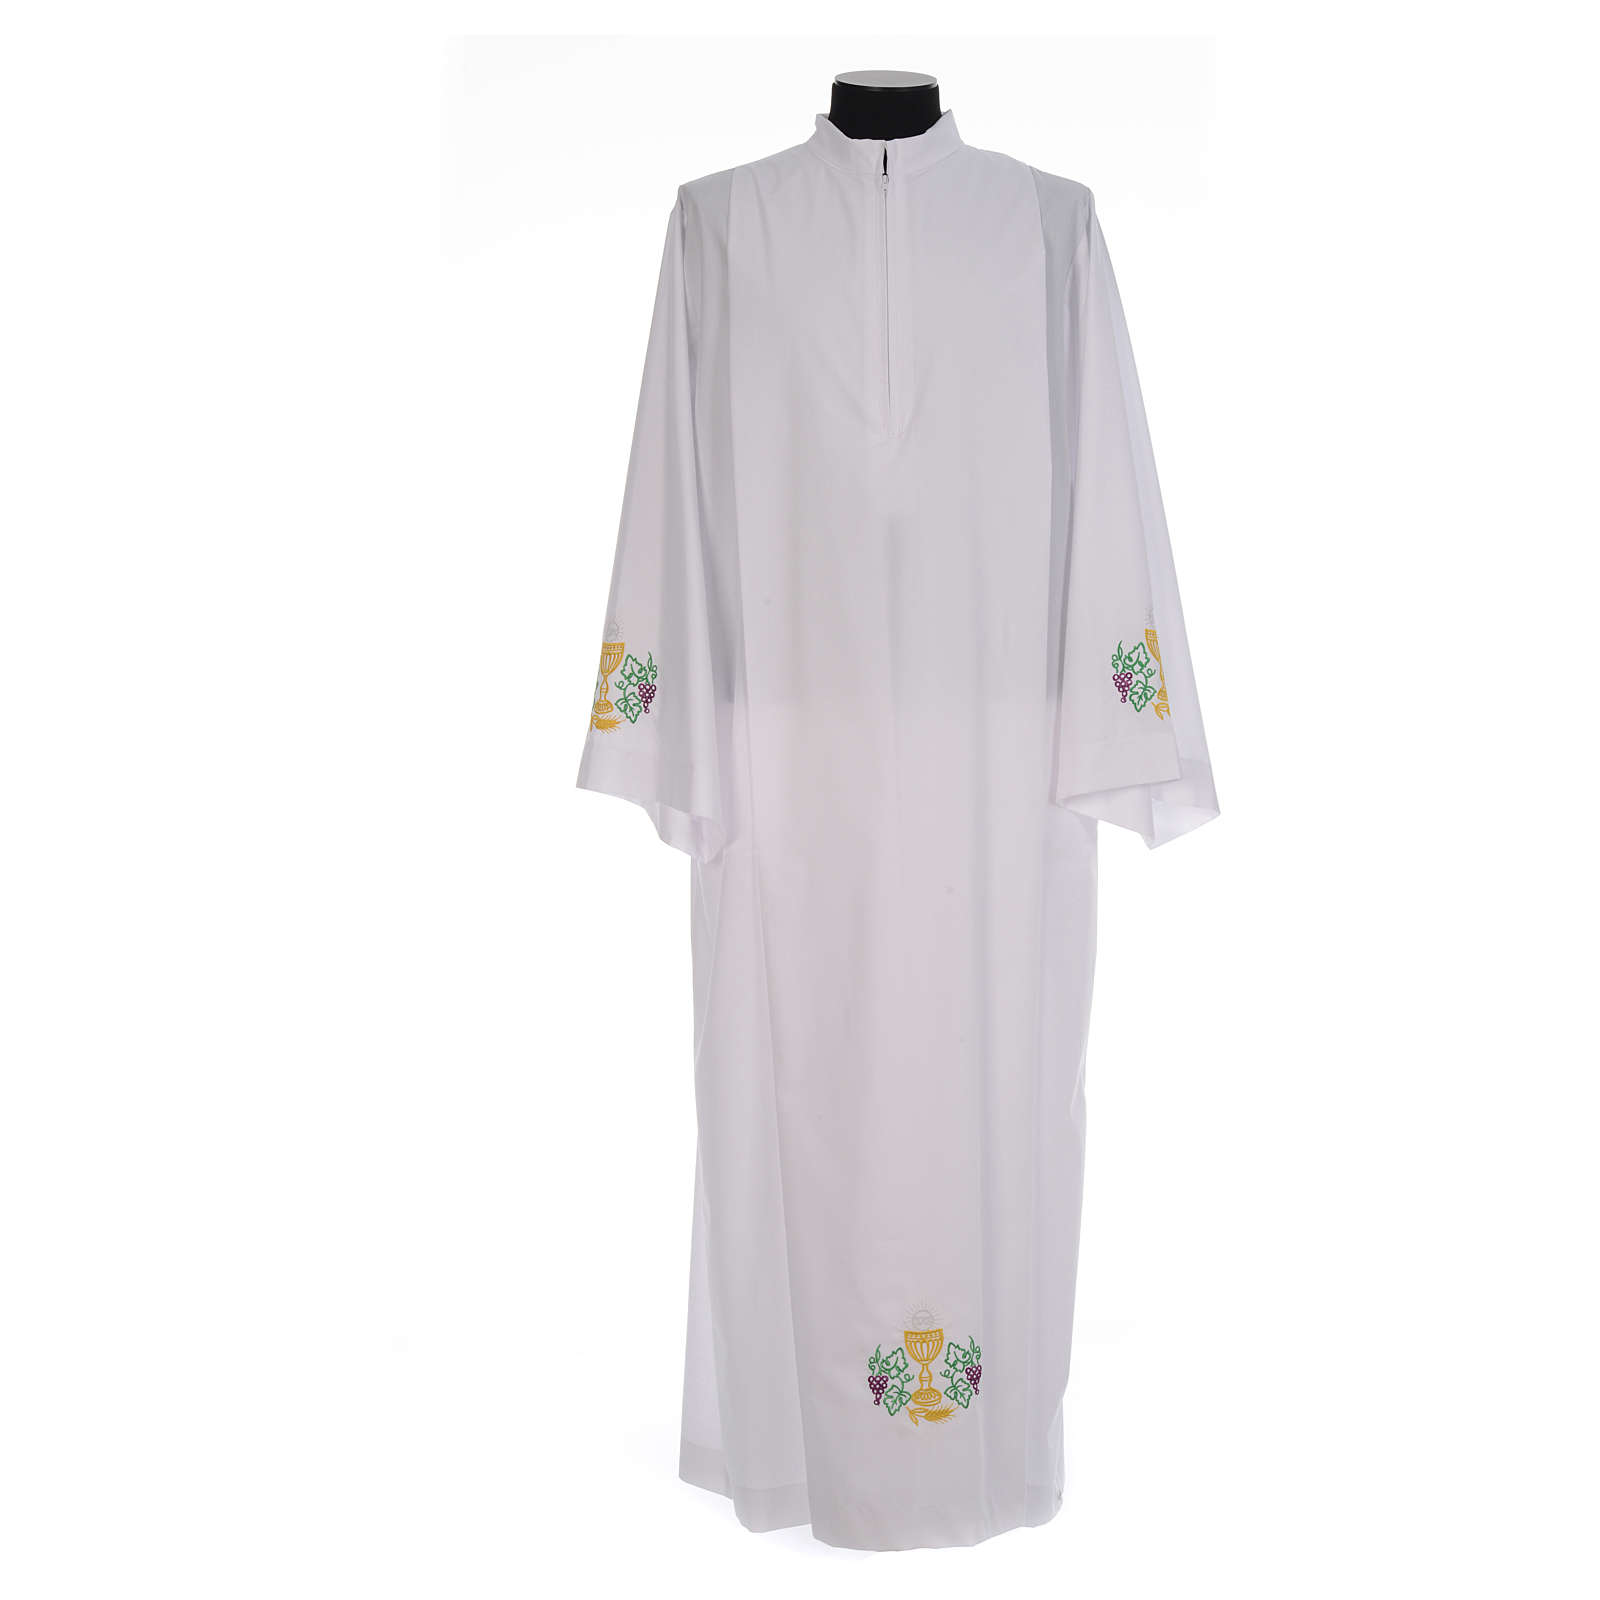 White alb with front pleats and embroidered chalice, grapes and wheat in cotton mix 4